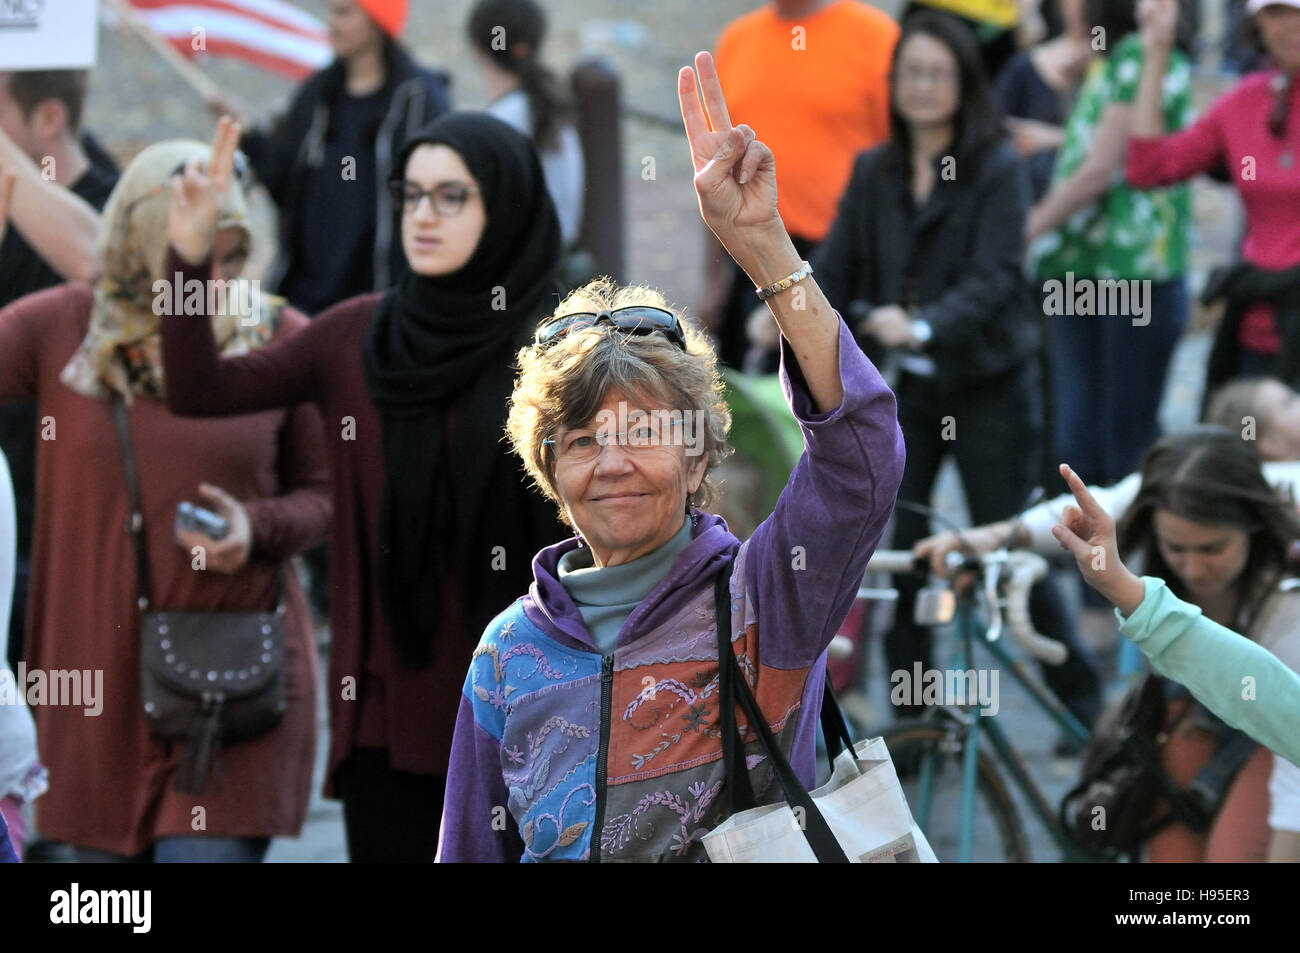 Philadelphia, Pennsylvania, USA. 19th November, 2016. Protesters make peace-signs as they march past Independence - Stock Image